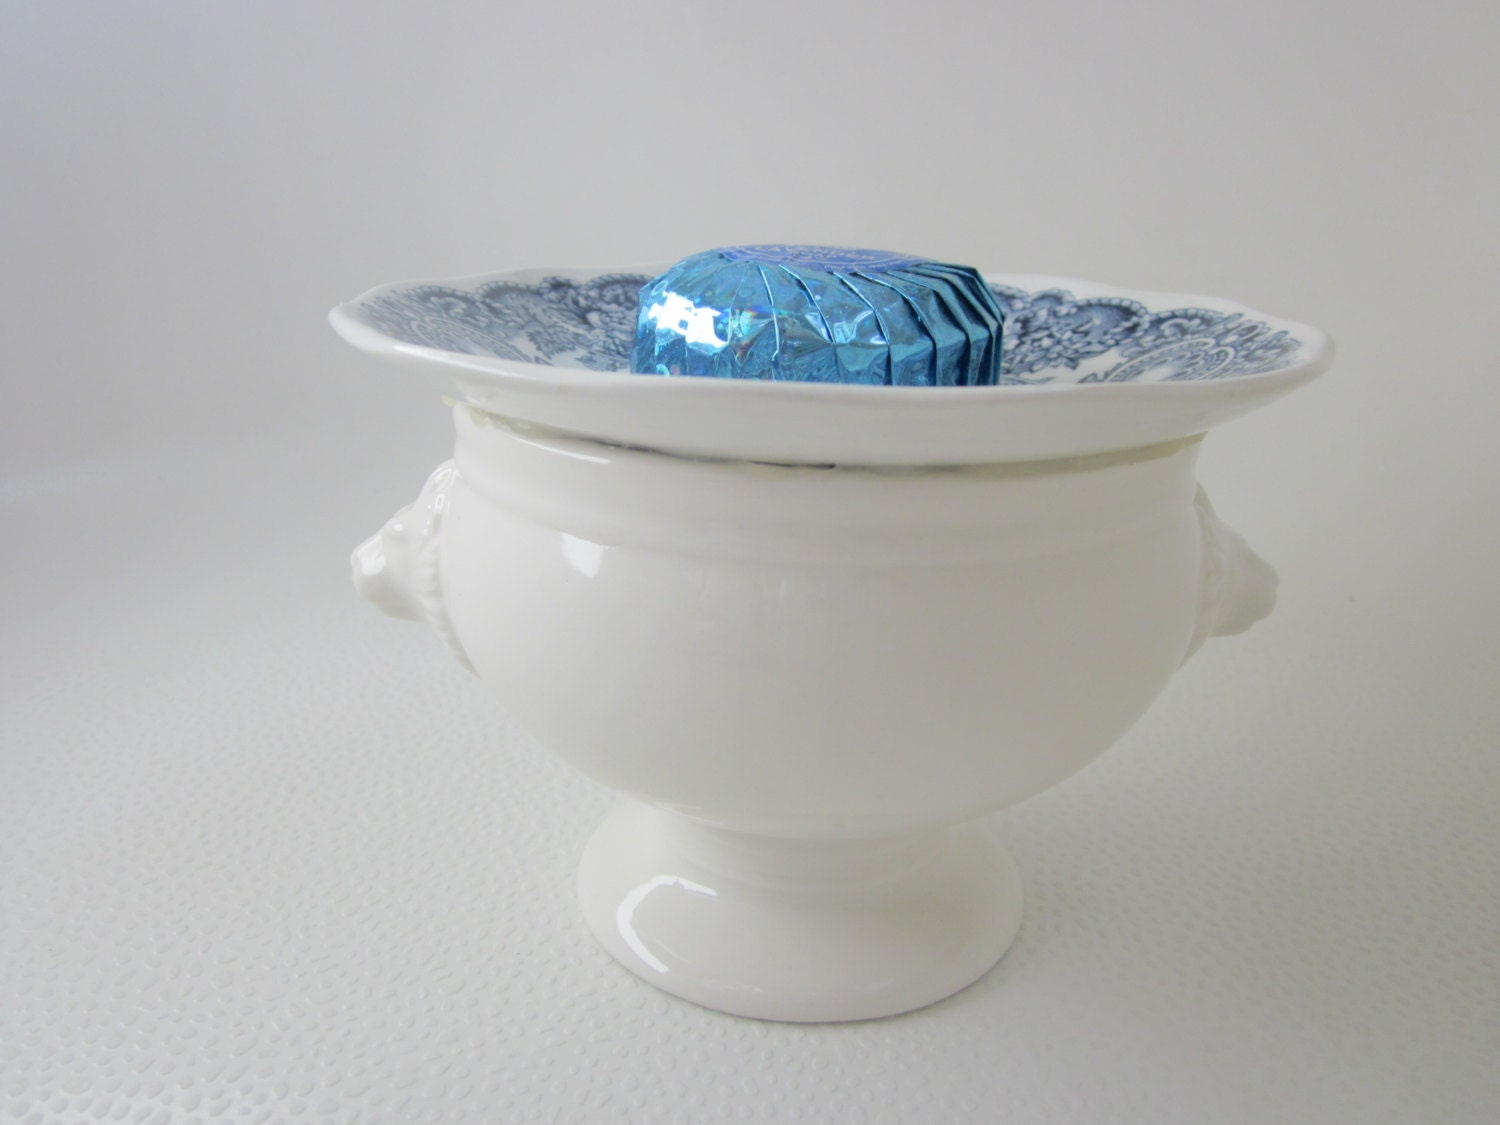 Blue Soap Dish Recycled Bathroom Decor